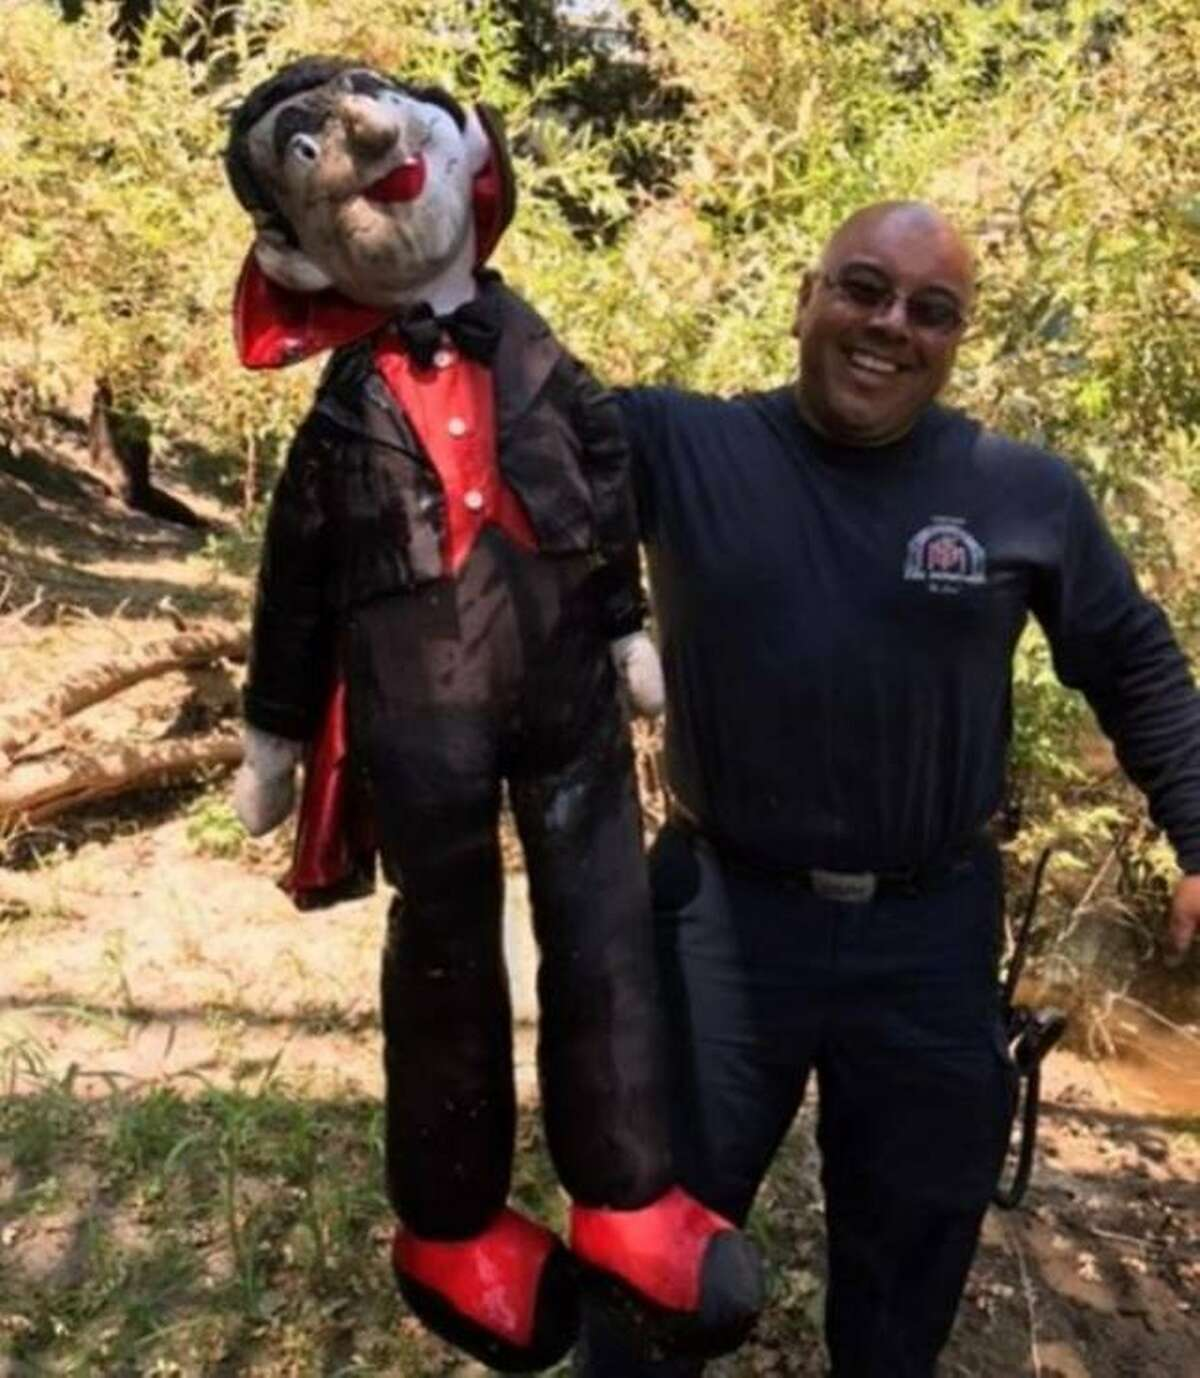 Capt. Jair Juarez of the Modesto Fire Department holds up the life-size Dracula doll that a winery employee thought might be a body floating on Dry Creek.